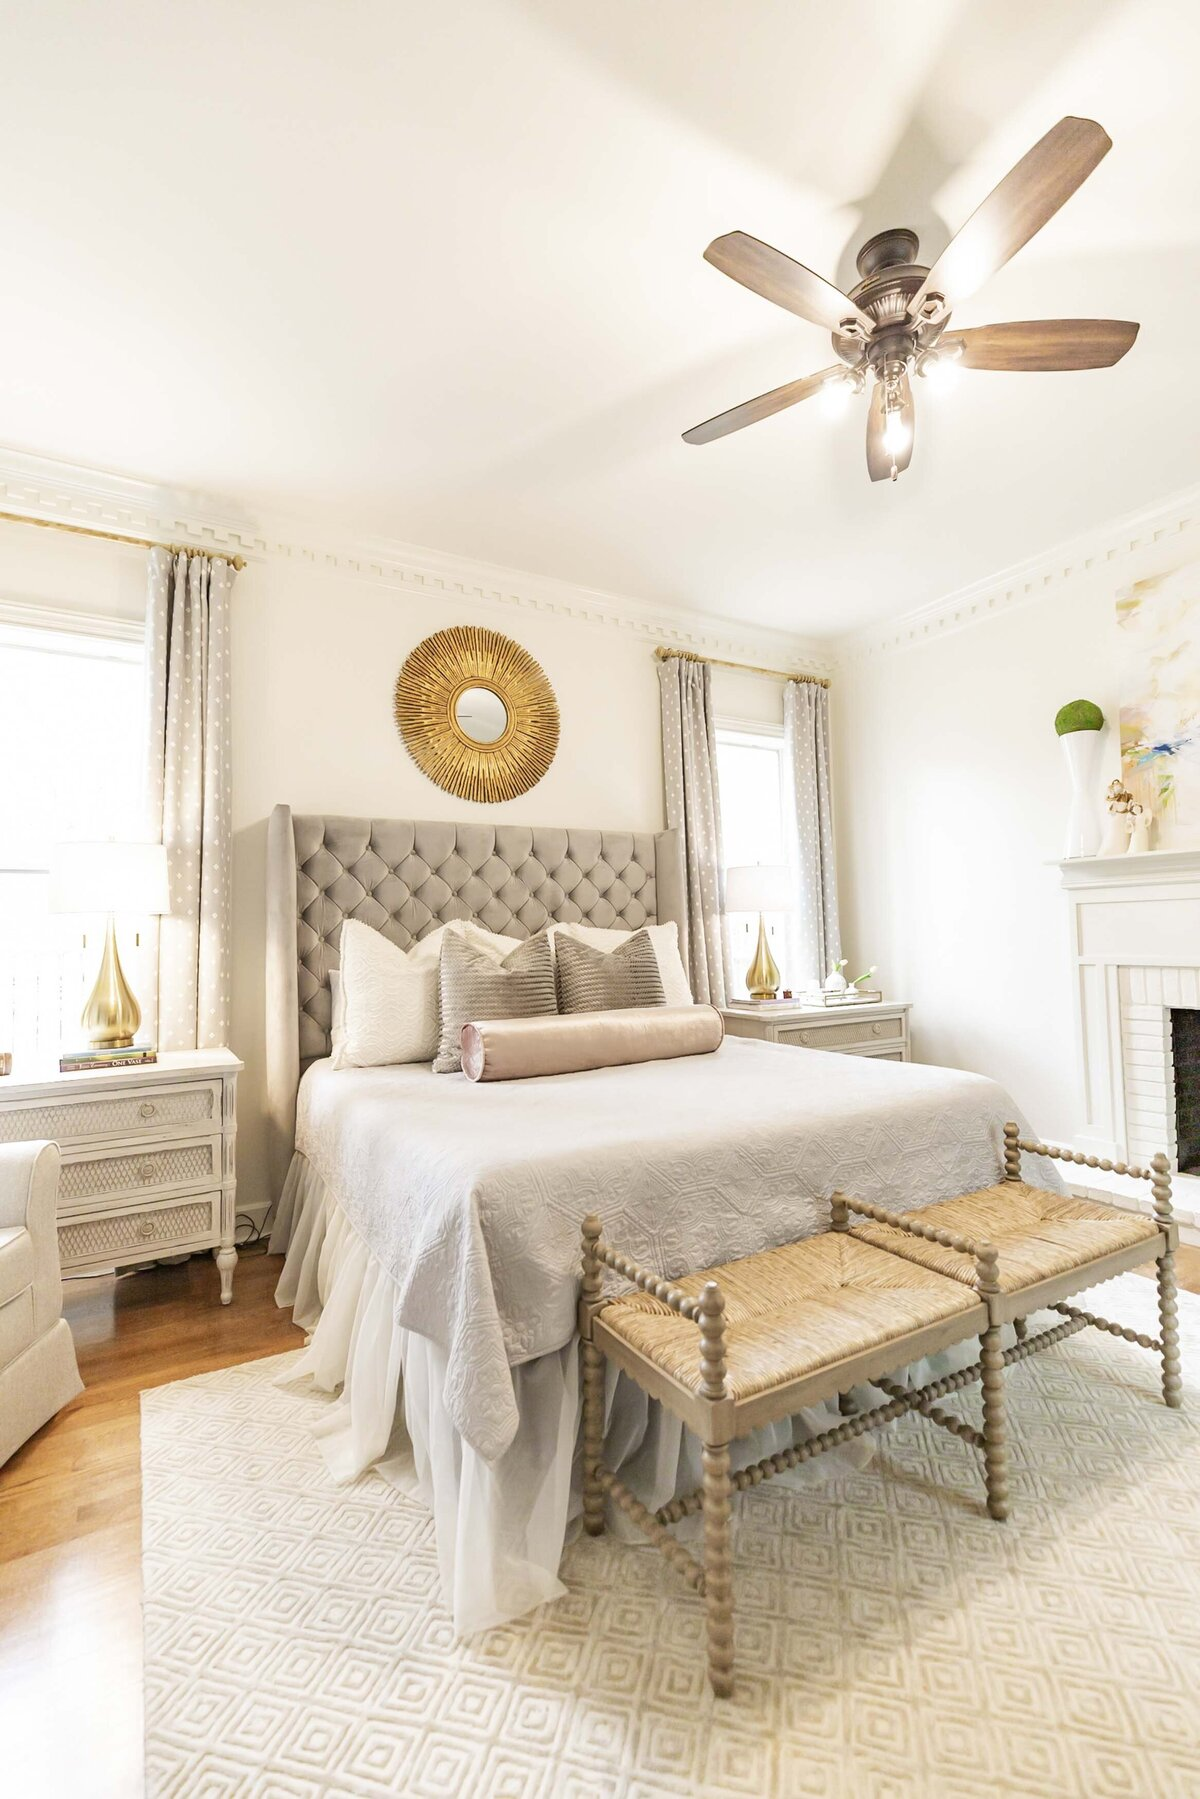 moda-designs-mississippi-interior-designer-bedroom-inspiration-gold-accents8